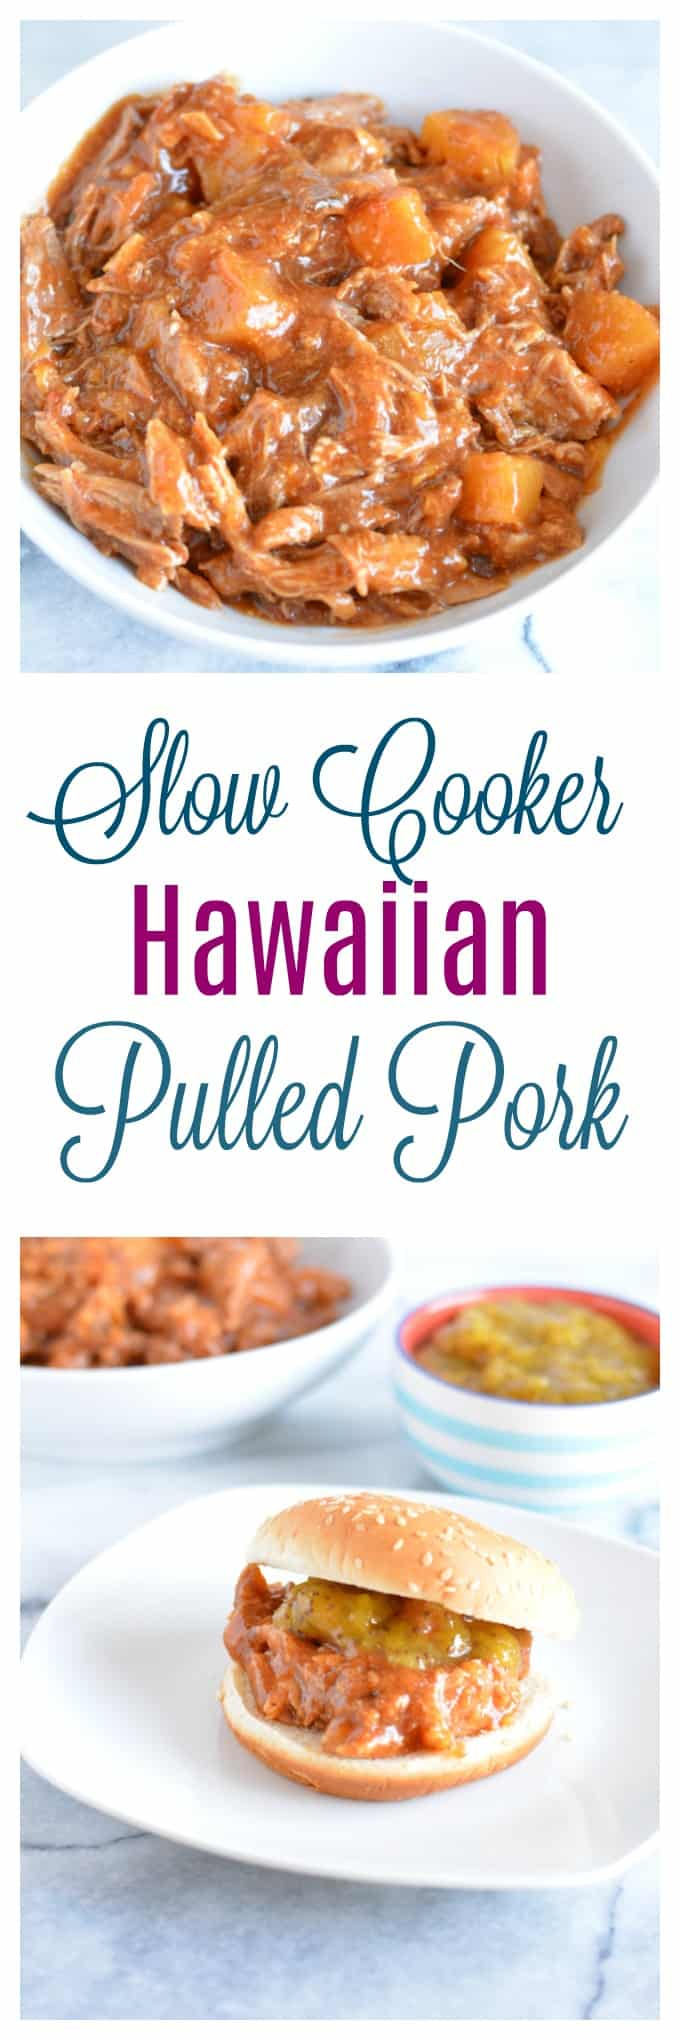 low Cooker Hawaiian Pulled Pork is a great recipe for a party or for meal prep.